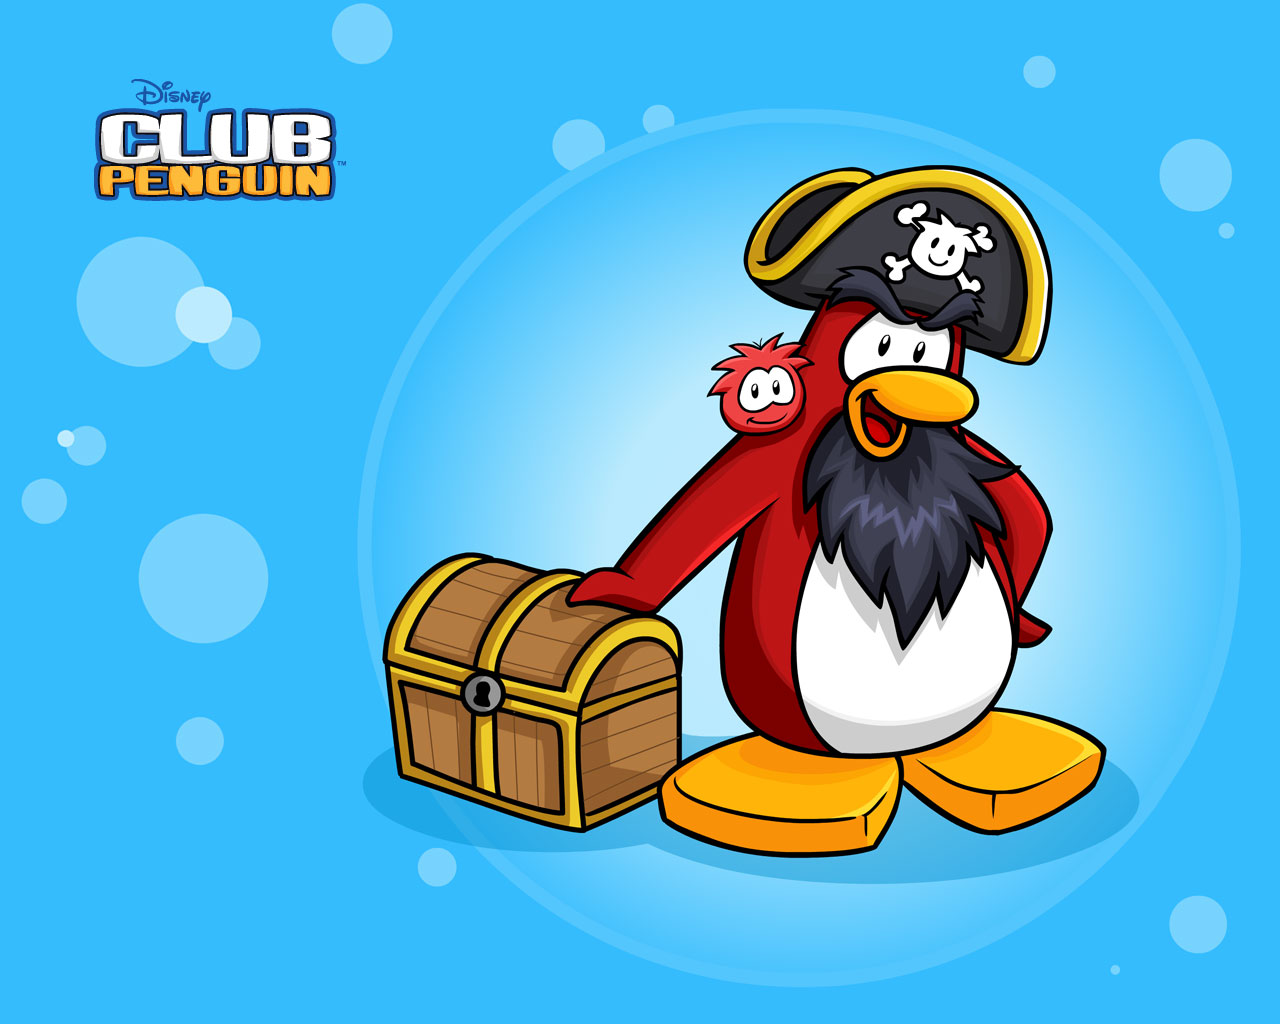 Club Penguin Wallpapers Club Penguin Help Guide 1280x1024